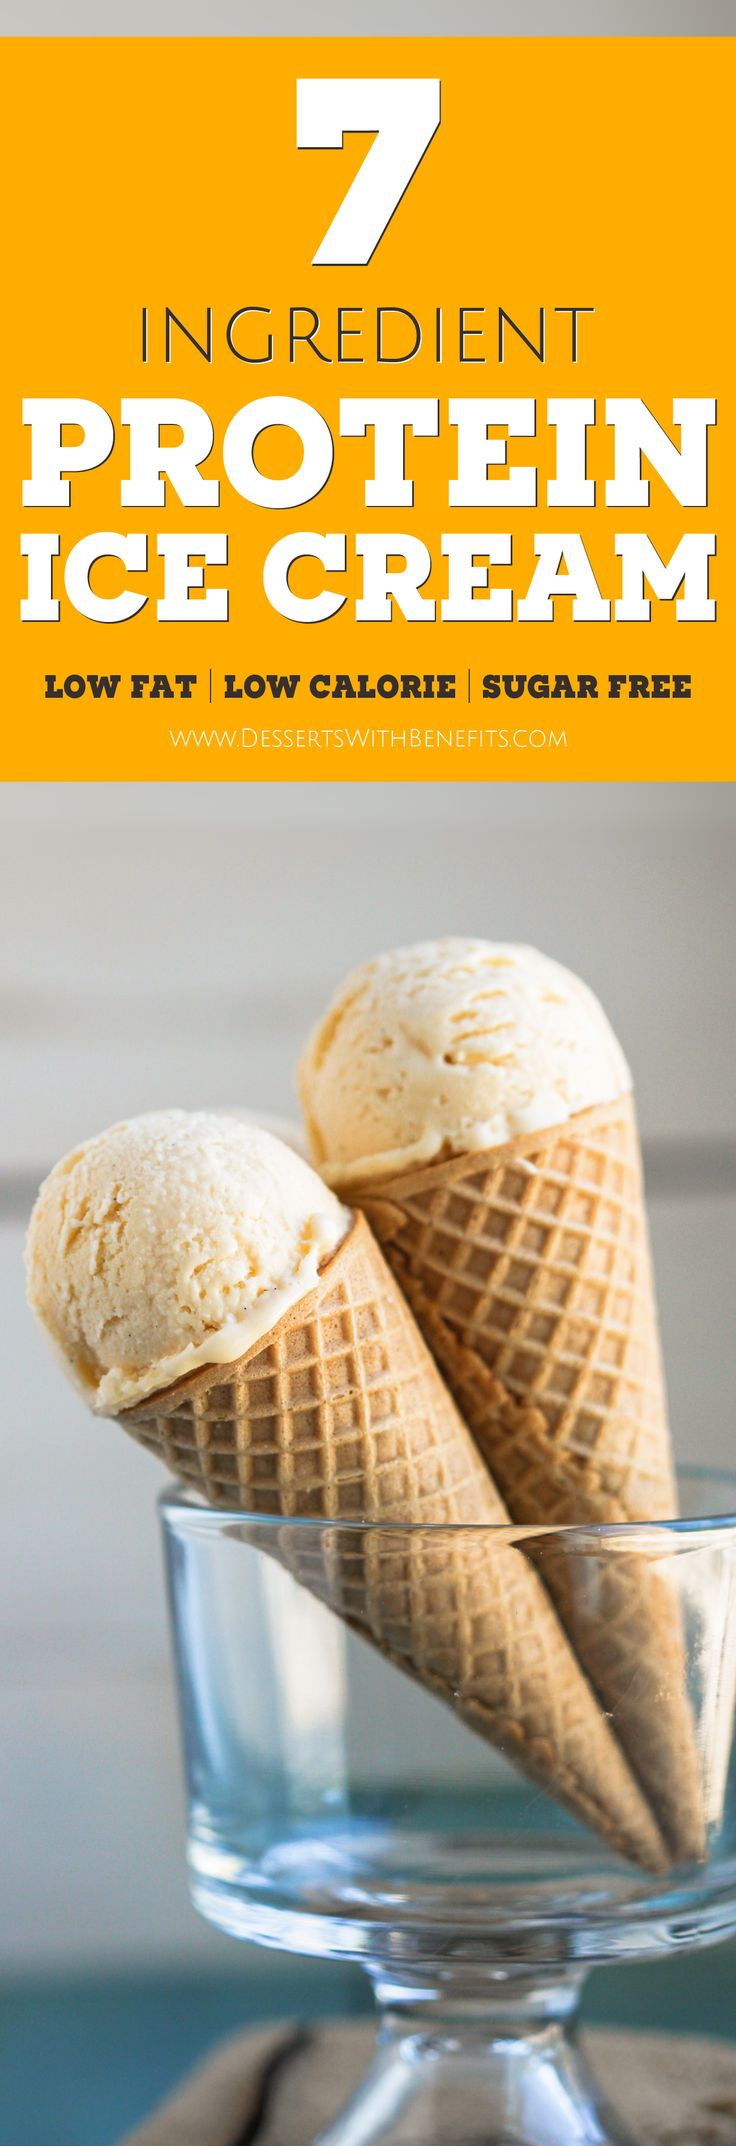 This Healthy Vanilla Protein Ice Cream is so sweet, so rich, and so creamy, you'd never know it's completely guilt-free! Oh yes, it's refined sugar free, low carb, low fat, high protein, and gluten free -- Healthy Dessert Recipes with sugar free, low calorie, low fat, high protein, gluten free, dairy free and vegan options at the Desserts With Benefits Blog (www.DessertsWithBenefits.com)